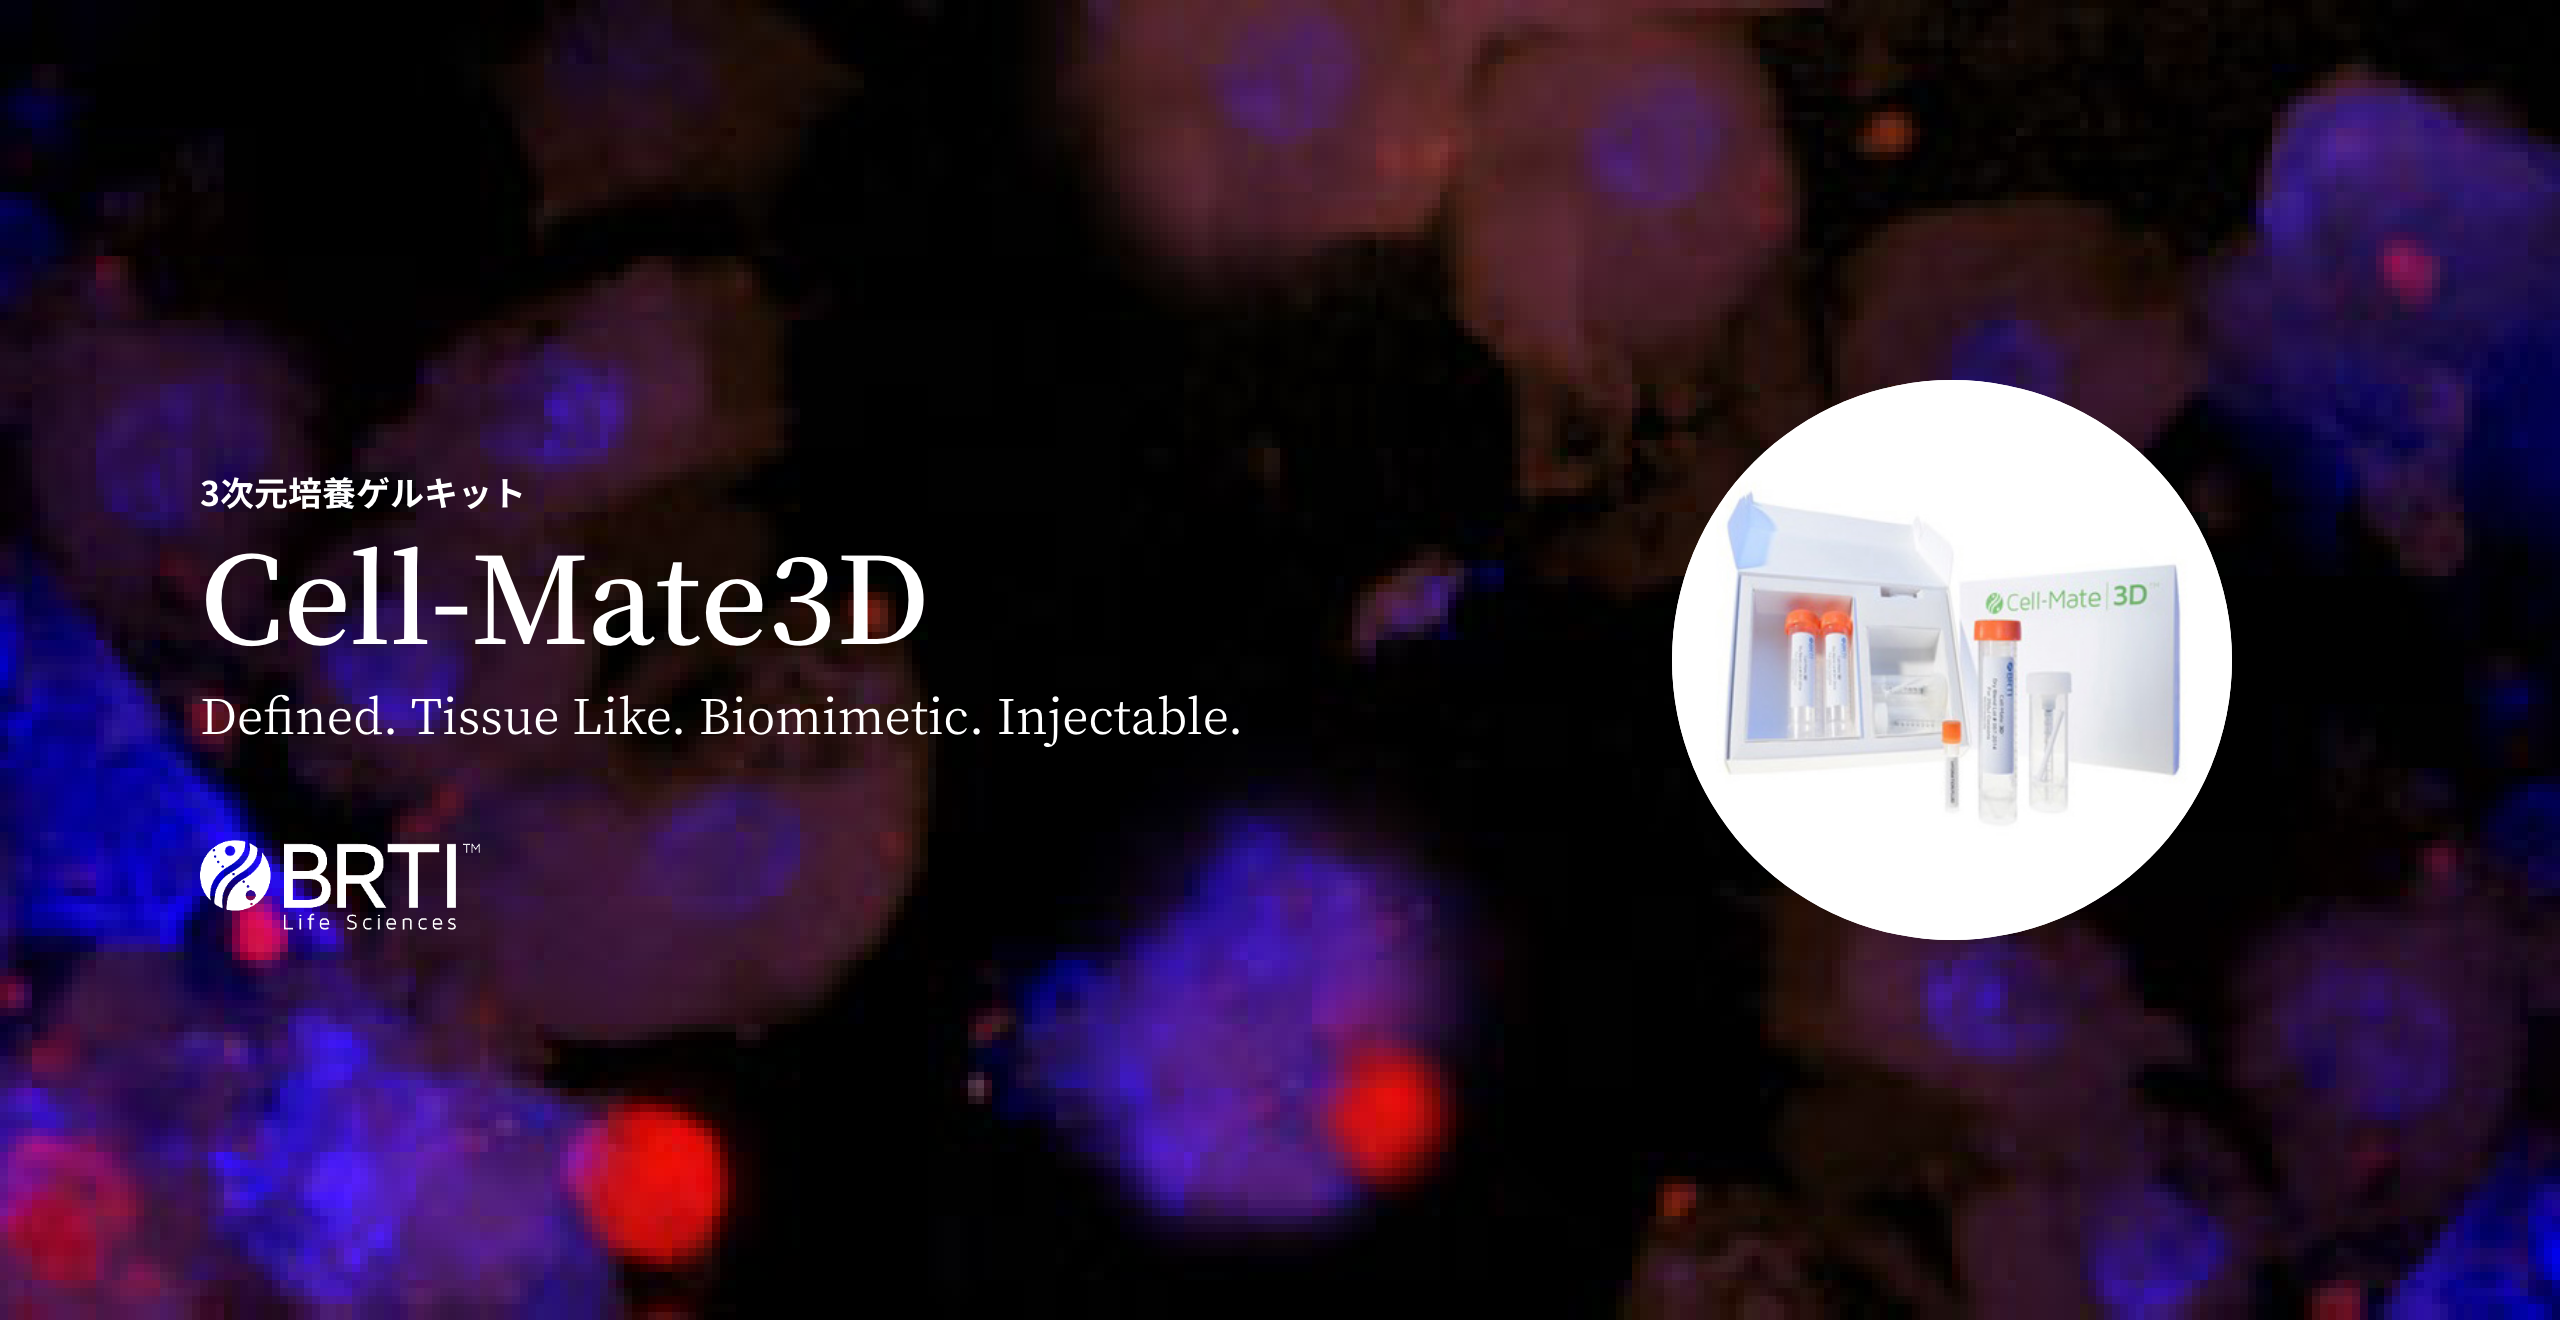 Cell-Mate3D